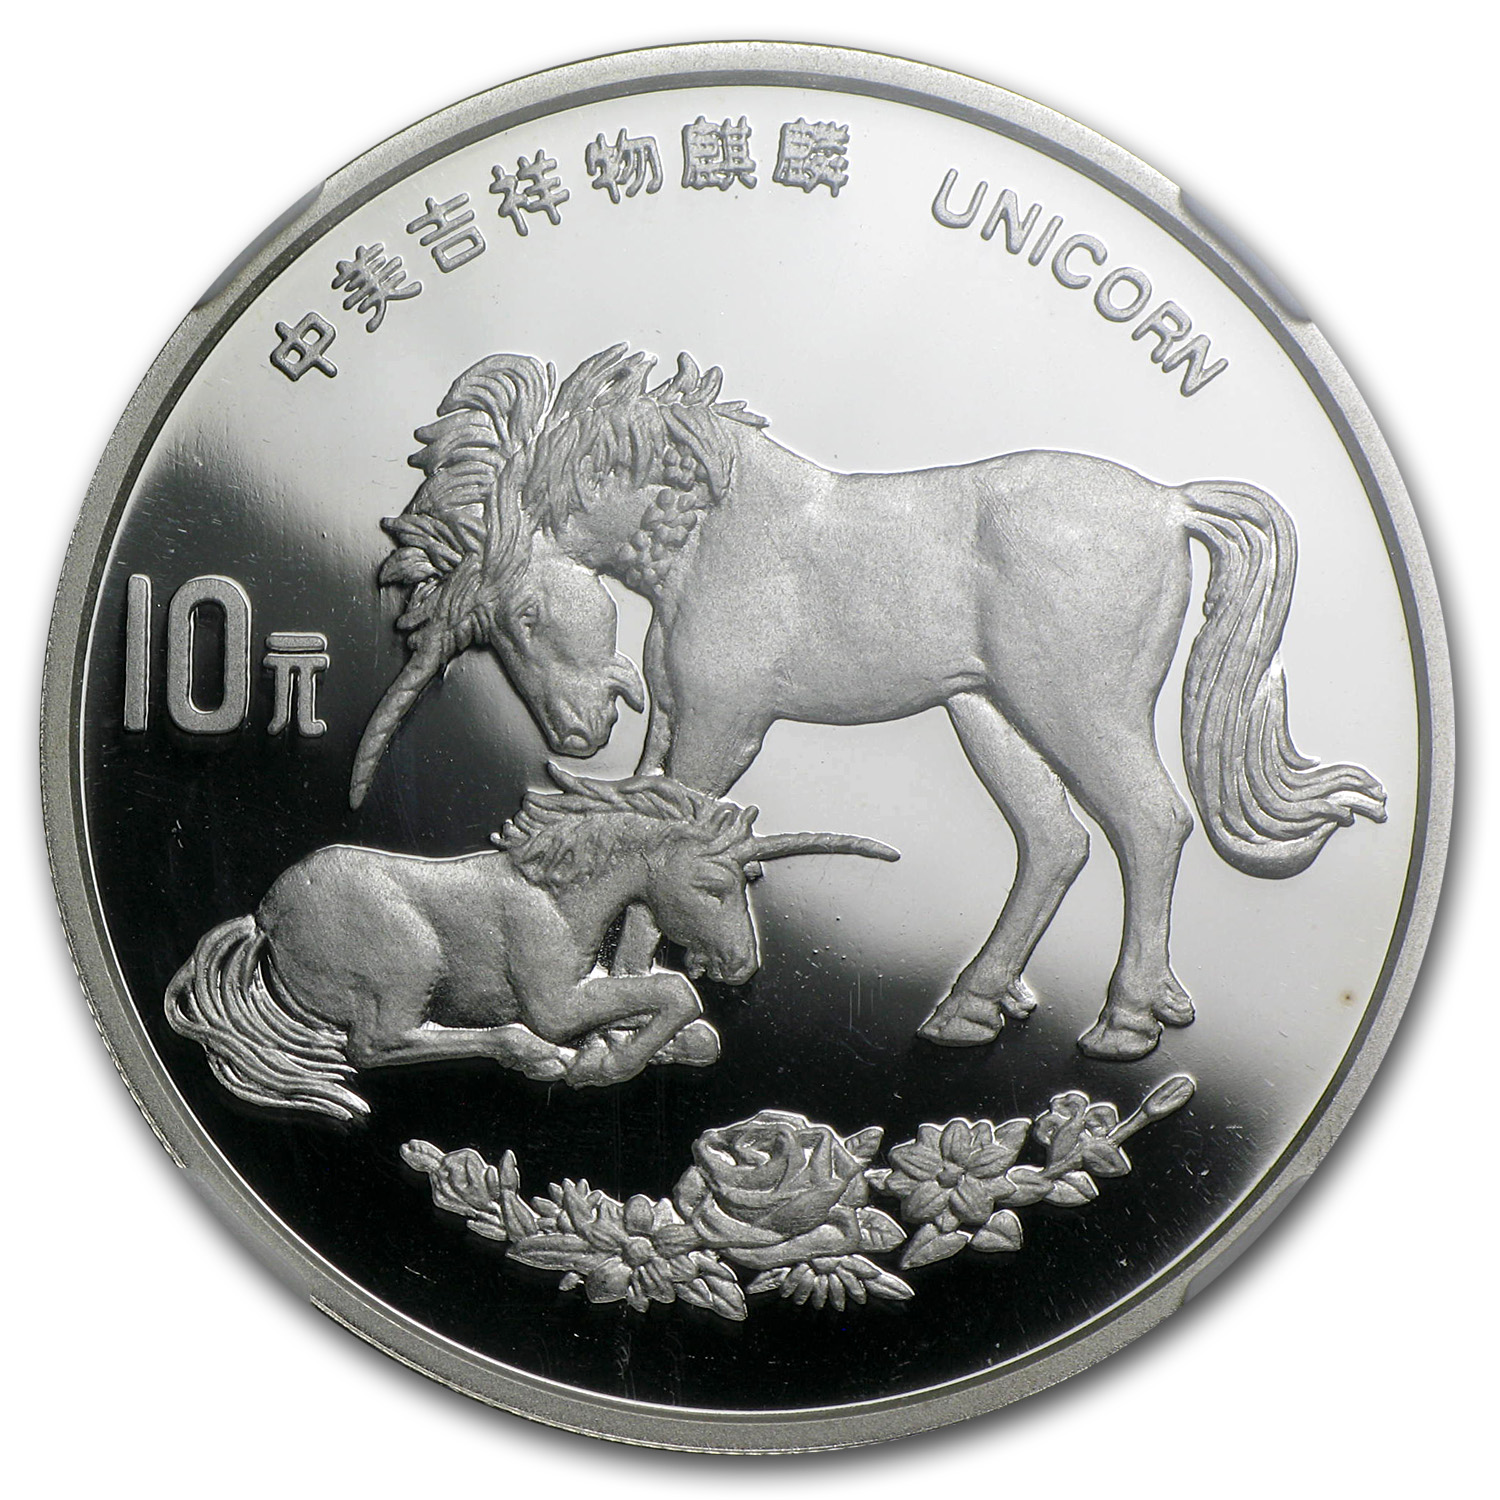 China 1995 (10 Yuan Unicorn) - Proof Silver Coin PF-69 NGC